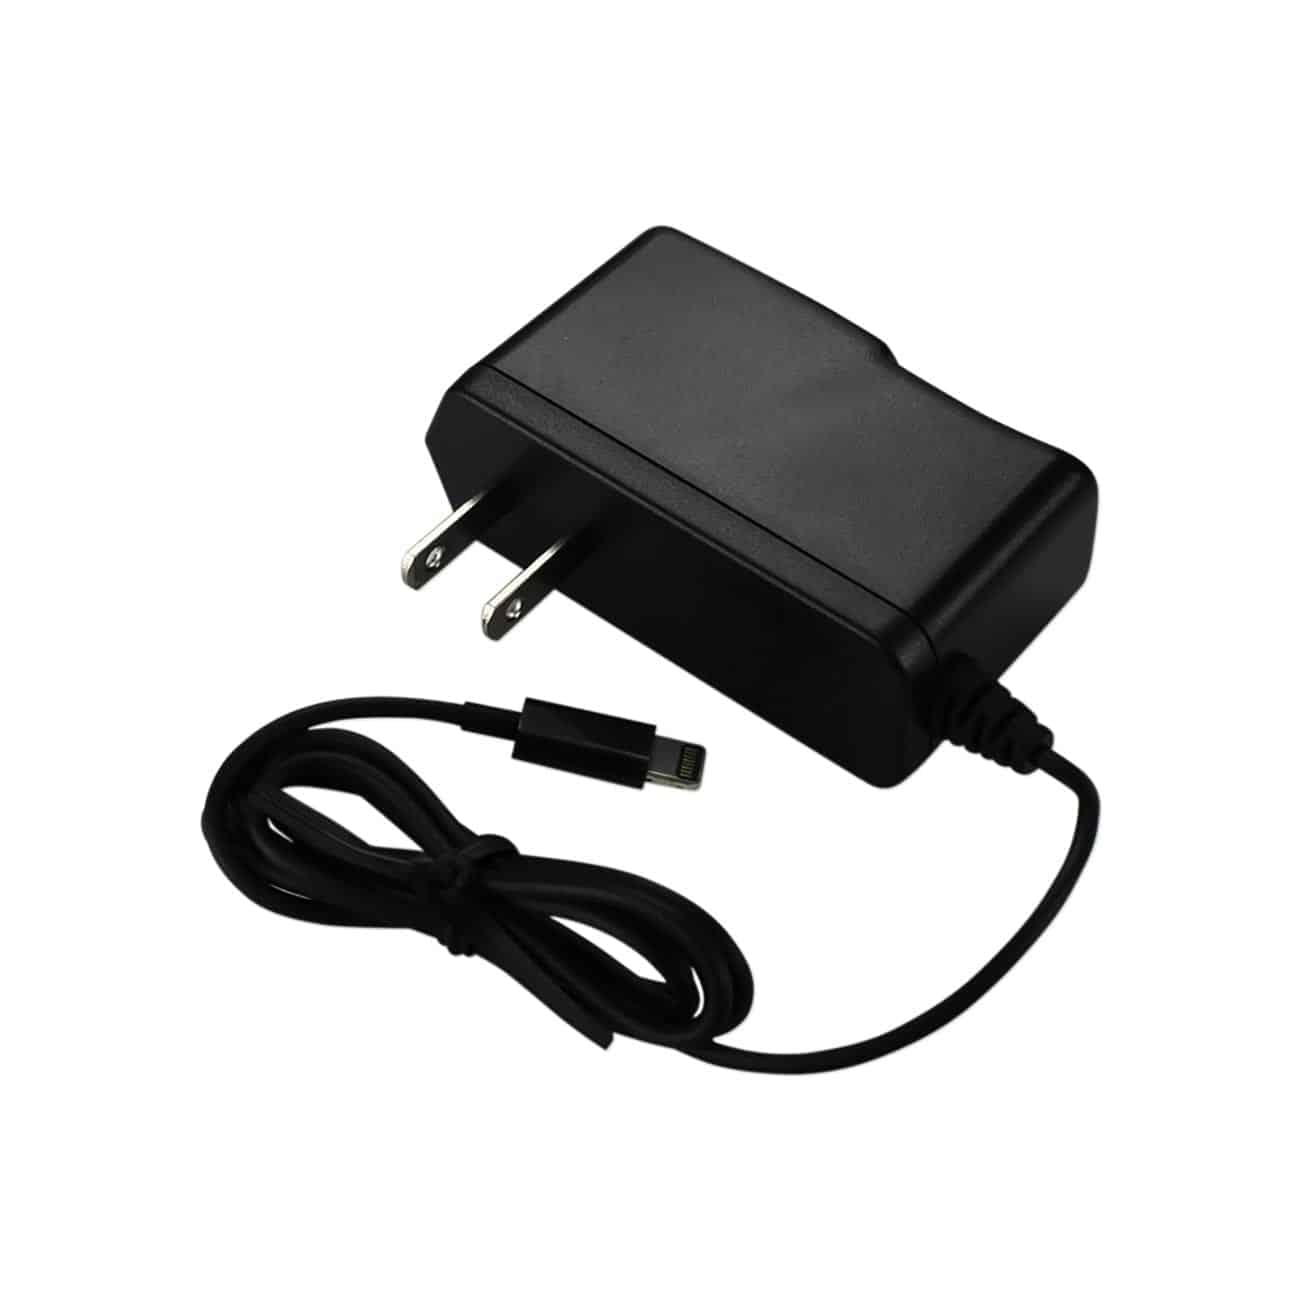 IPHONE SE/ 5S/ 5 PORTABLE USB TRAVEL ADAPTER CHARGER WITH BUILT IN CABLE IN BLACK